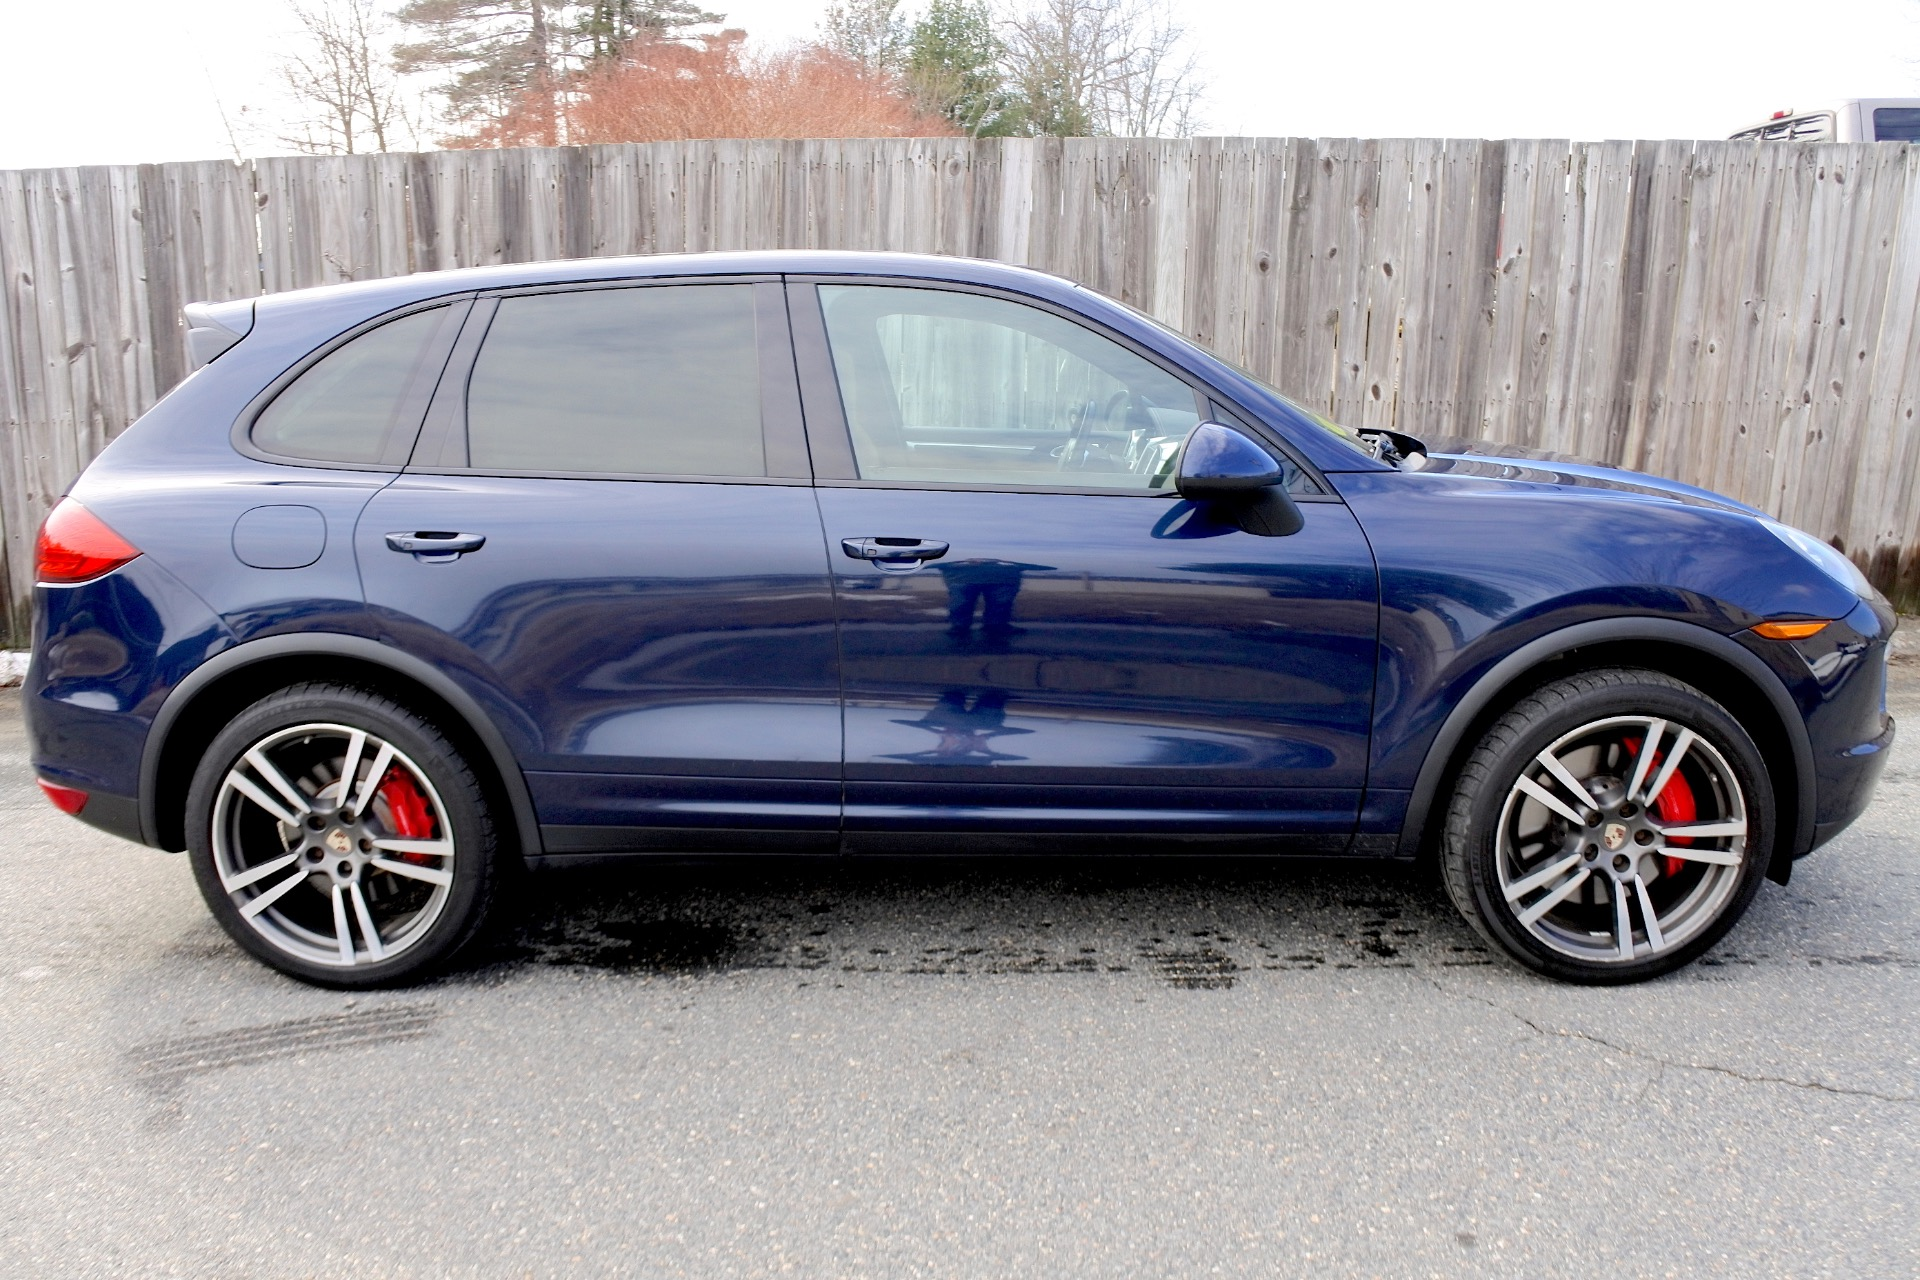 Used 2012 Porsche Cayenne AWD 4dr Turbo Used 2012 Porsche Cayenne AWD 4dr Turbo for sale  at Metro West Motorcars LLC in Shrewsbury MA 6